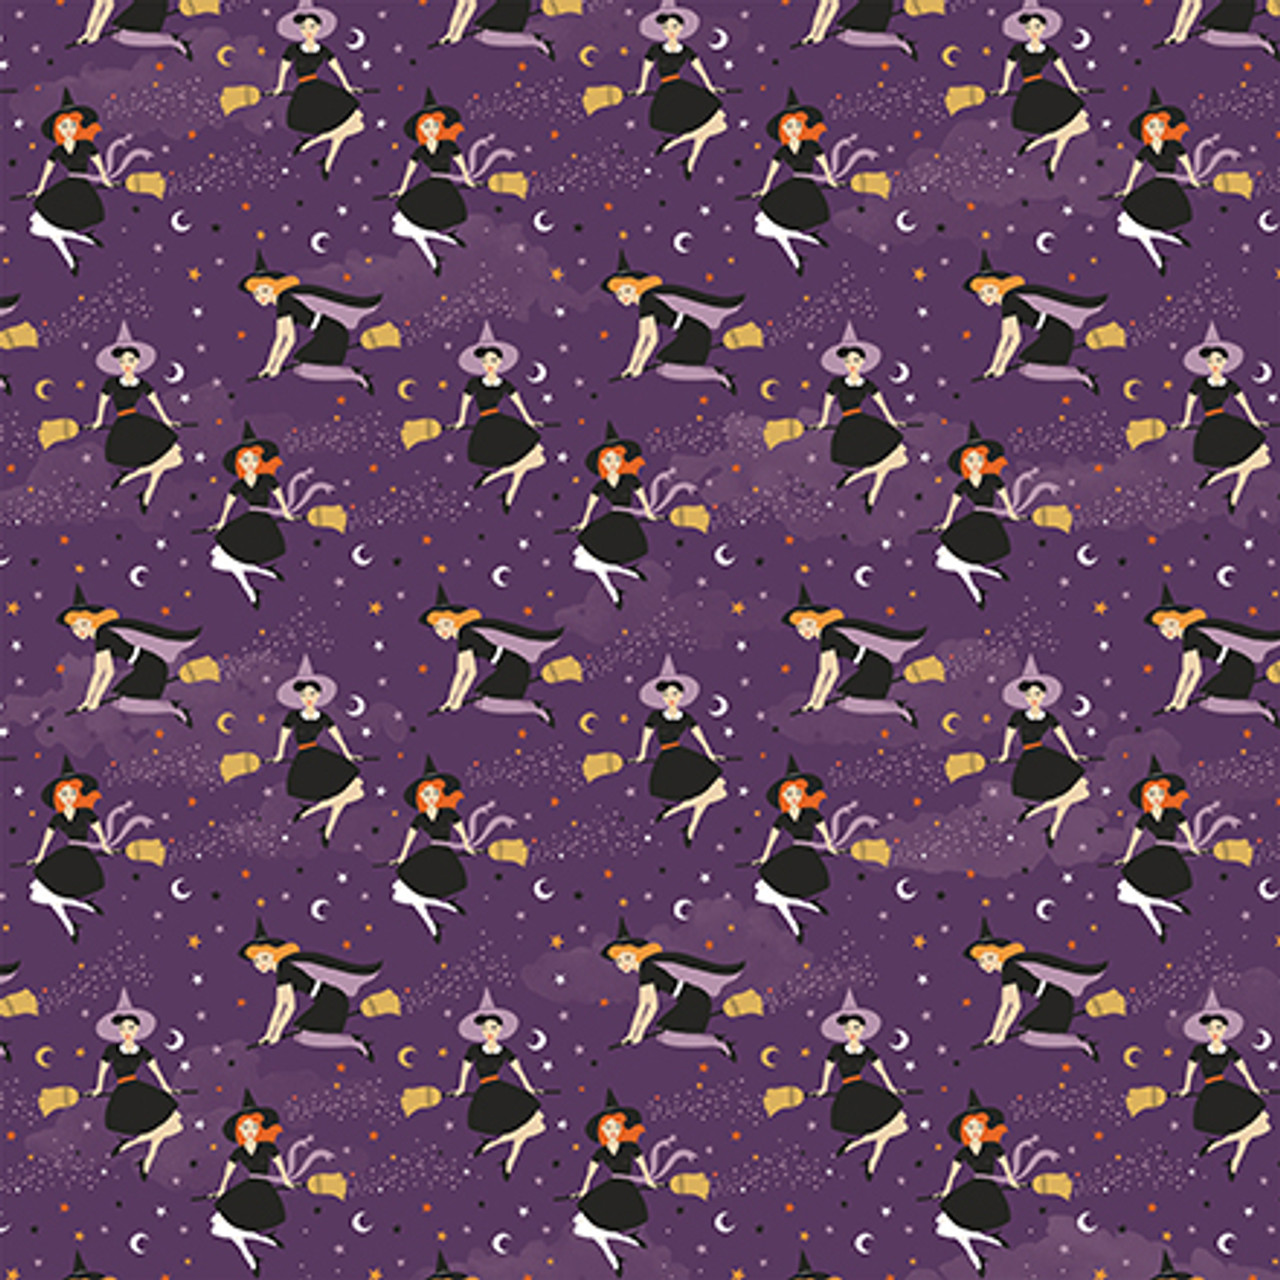 Bewitched Collection Wicked Witches 12 x 12 Double-Sided Scrapbook Paper by Echo Park Paper